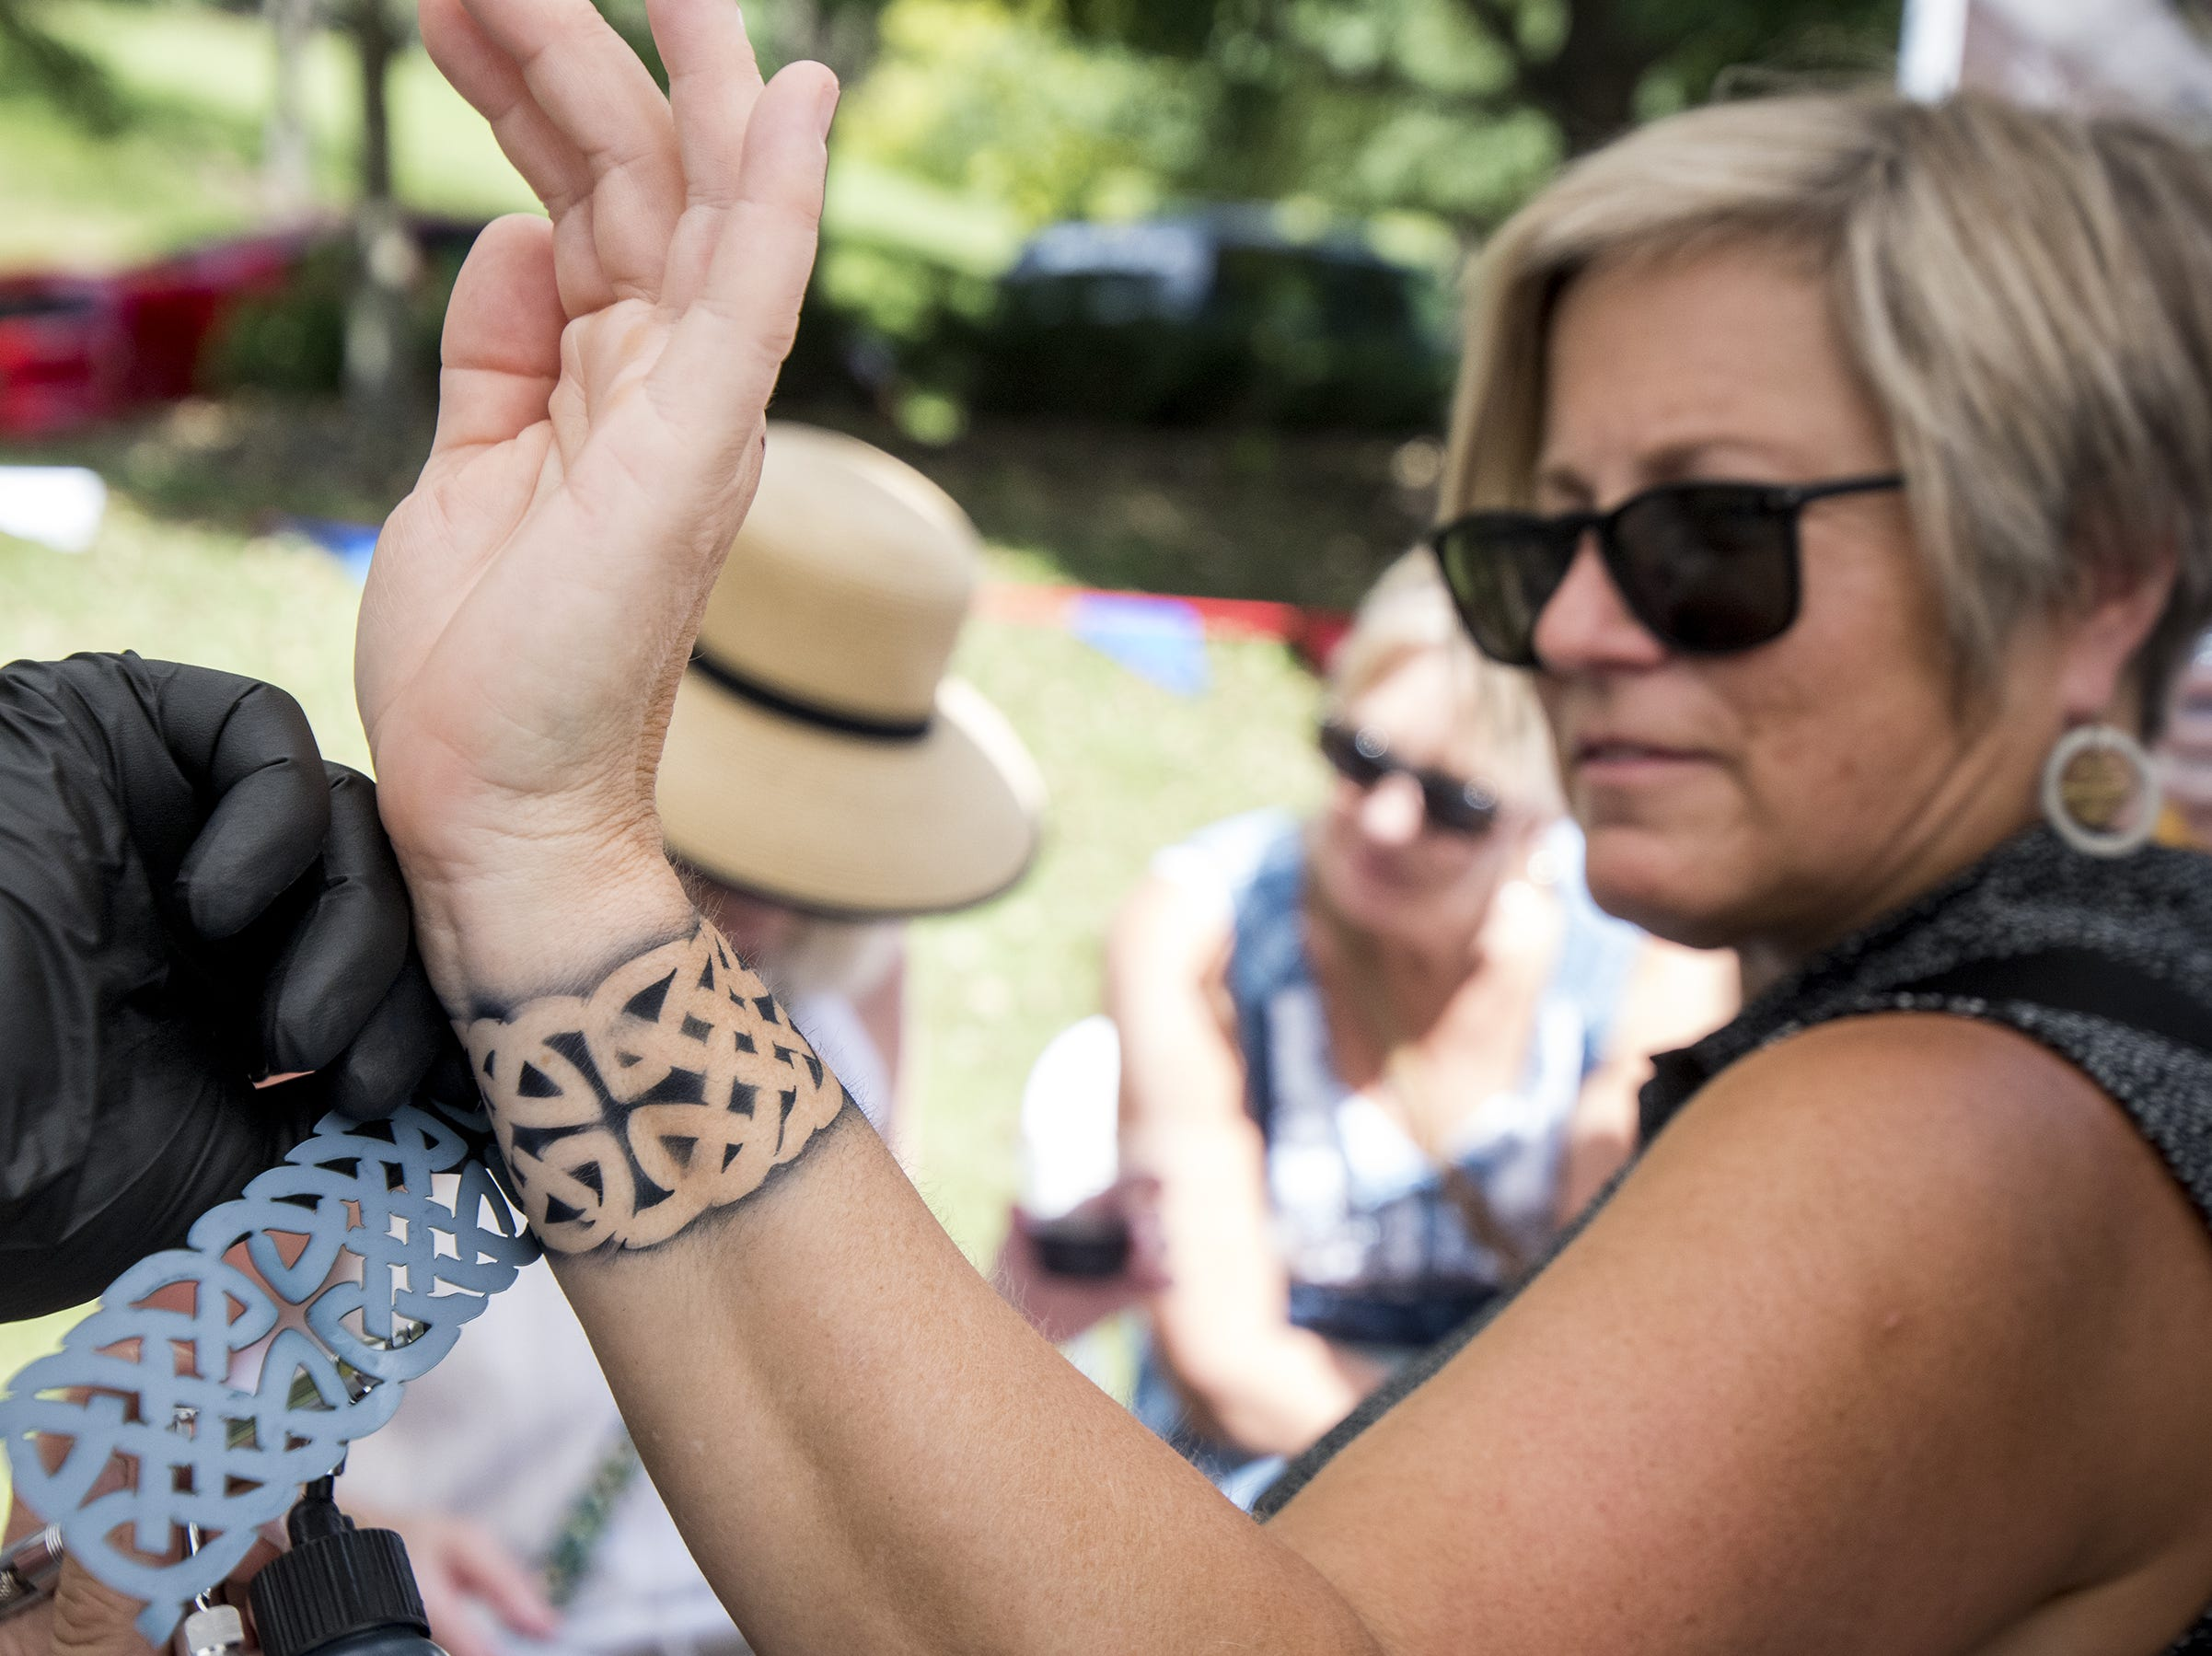 Dede Ackerman of Milford gets a airbrush tattoo at the Faces By Lisa booth during Fifty Fest at 50 West Brewing Saturday, September 15, 2018 in Cincinnati, Ohio. The family-friendly festival will have music and entertainment until midnight Saturday.